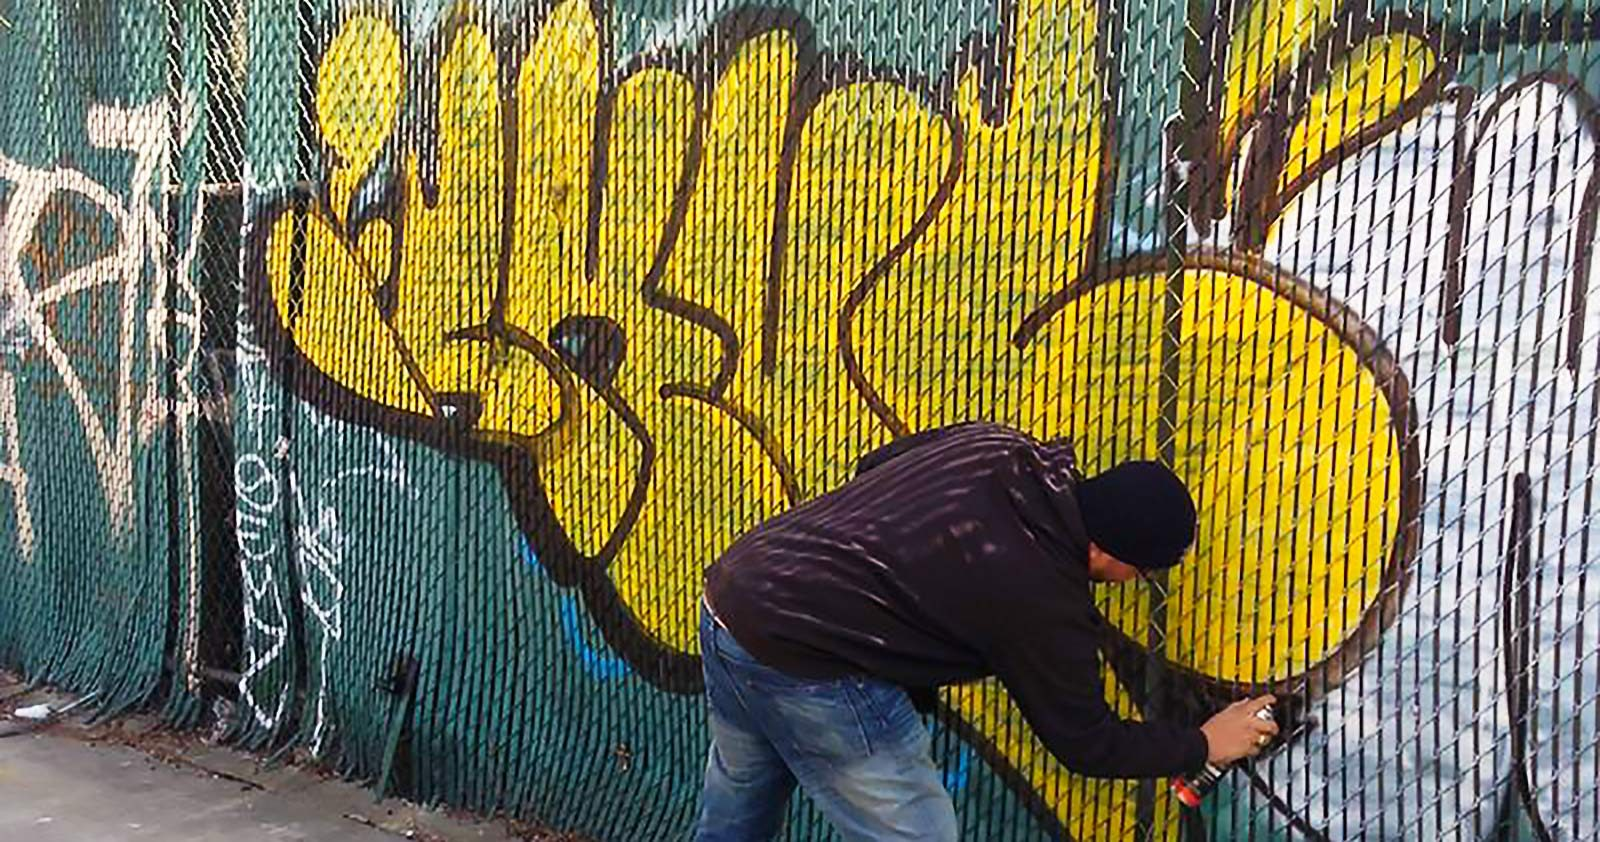 Destruction, style & violence: Skuf raconte le Graffiti à New York dans les 90's